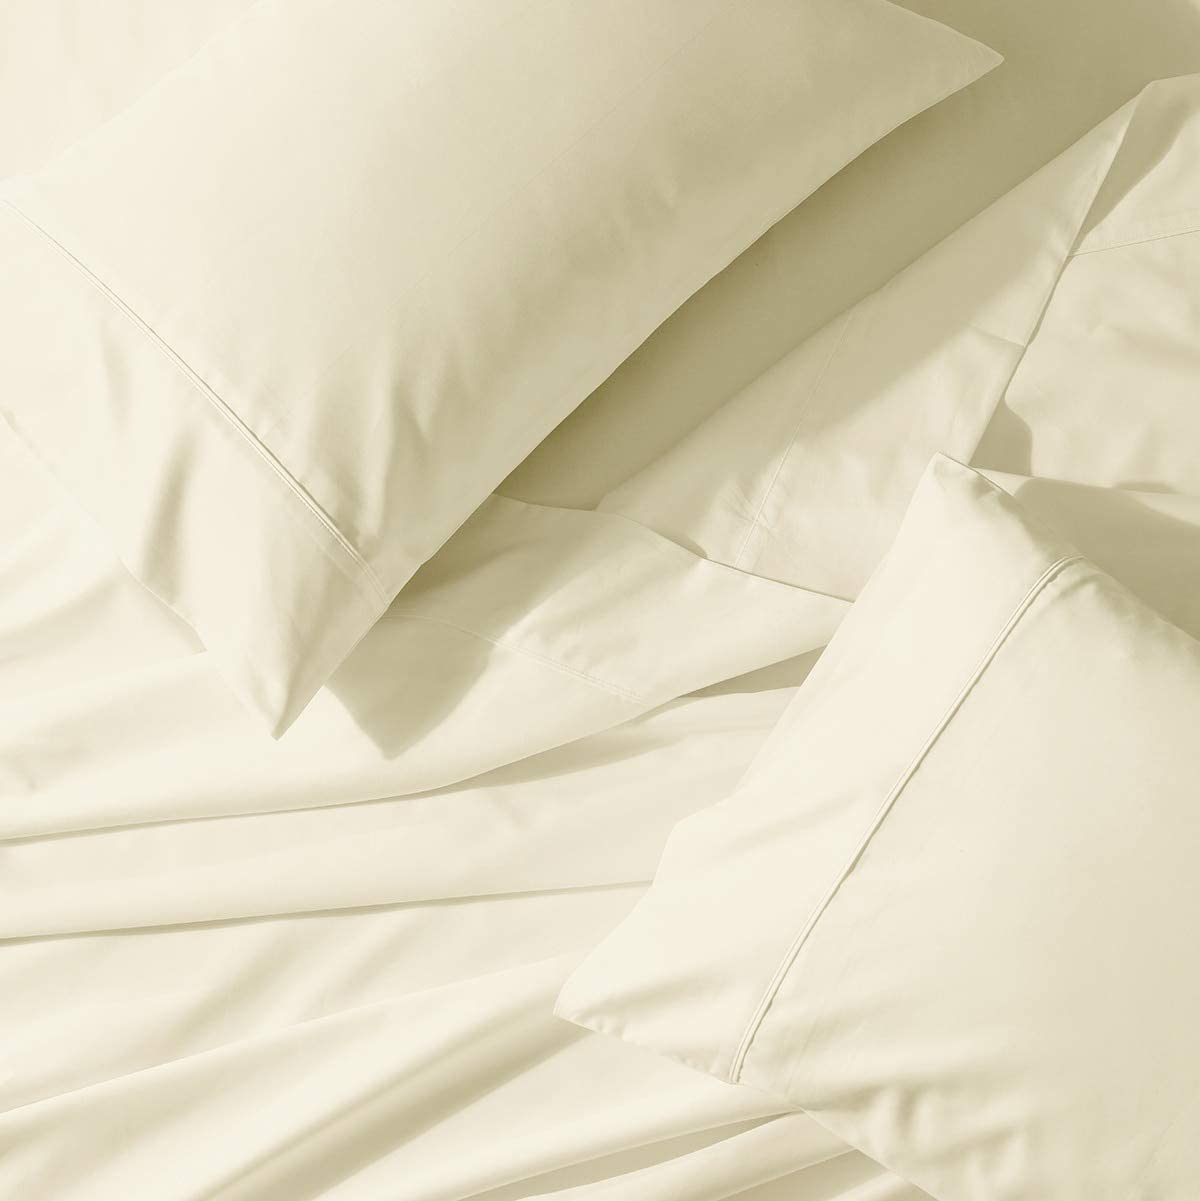 Abripedic 22 Inch Deep Pocket Solid Ivory Queen 300TC Sheet Set, Breathable Crispy Soft Percale Bed Sheets